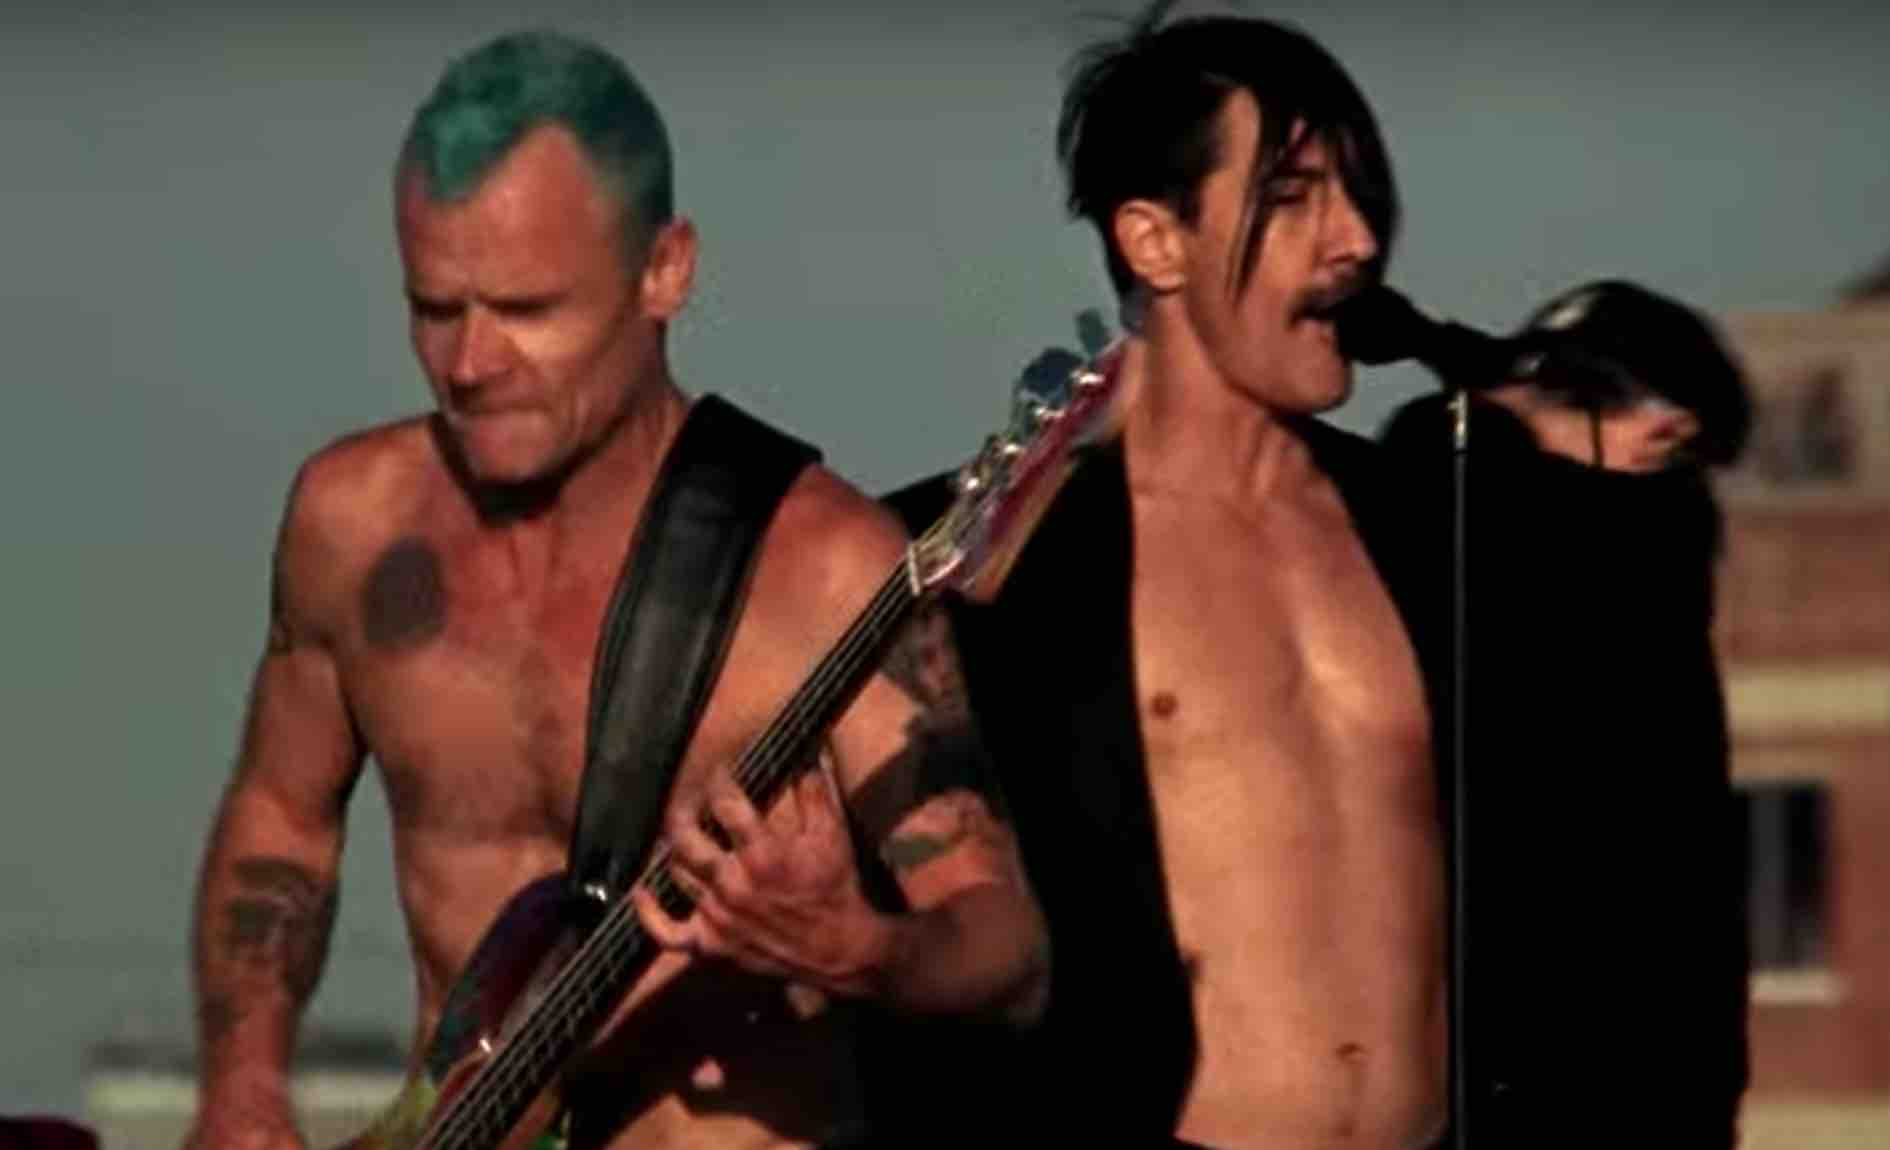 Red Hot Chili Peppers Member Details Unreleased Music With